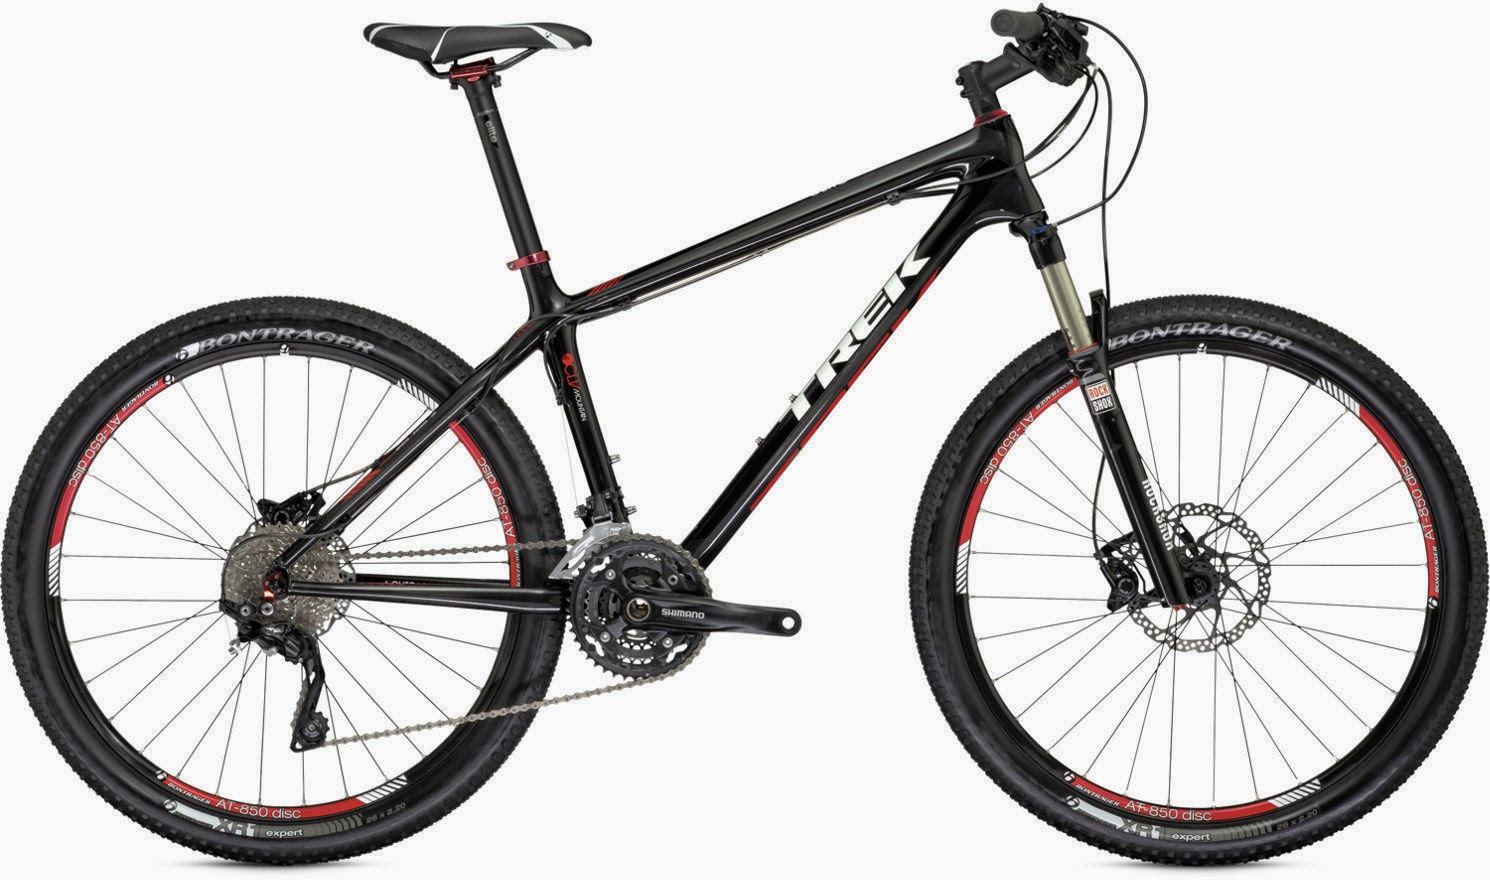 TREK ELITE -9 Series